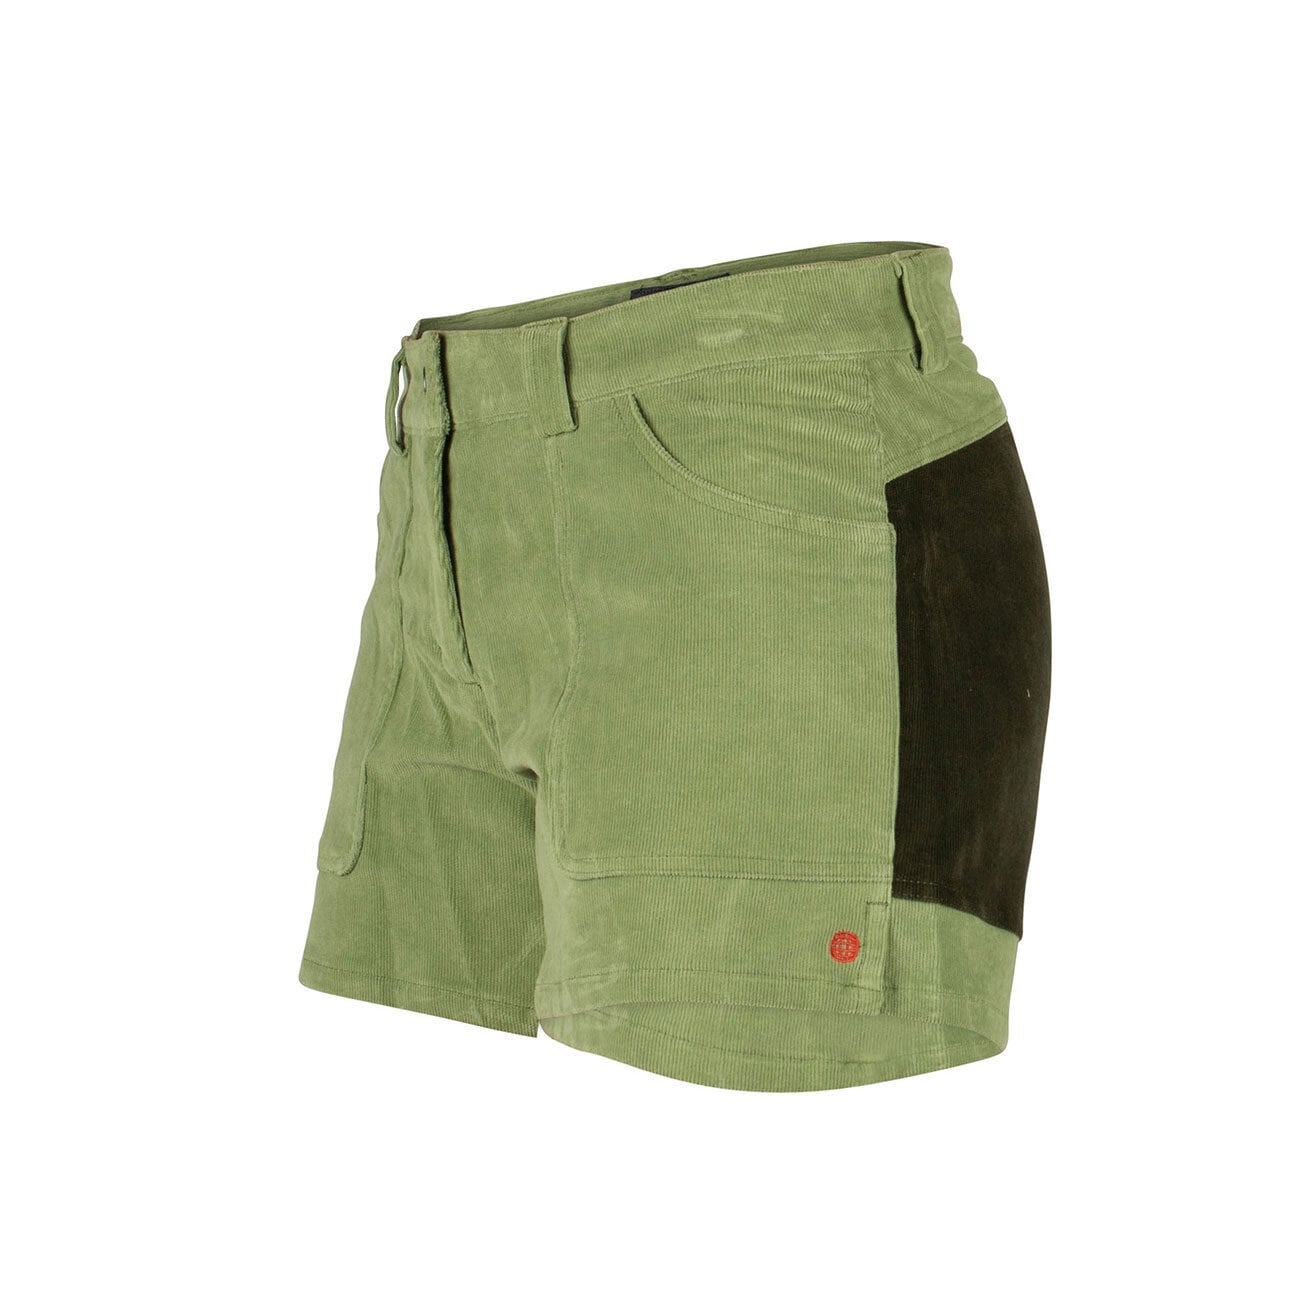 Amundsen Sports 5incher Concord W`s, Shorts